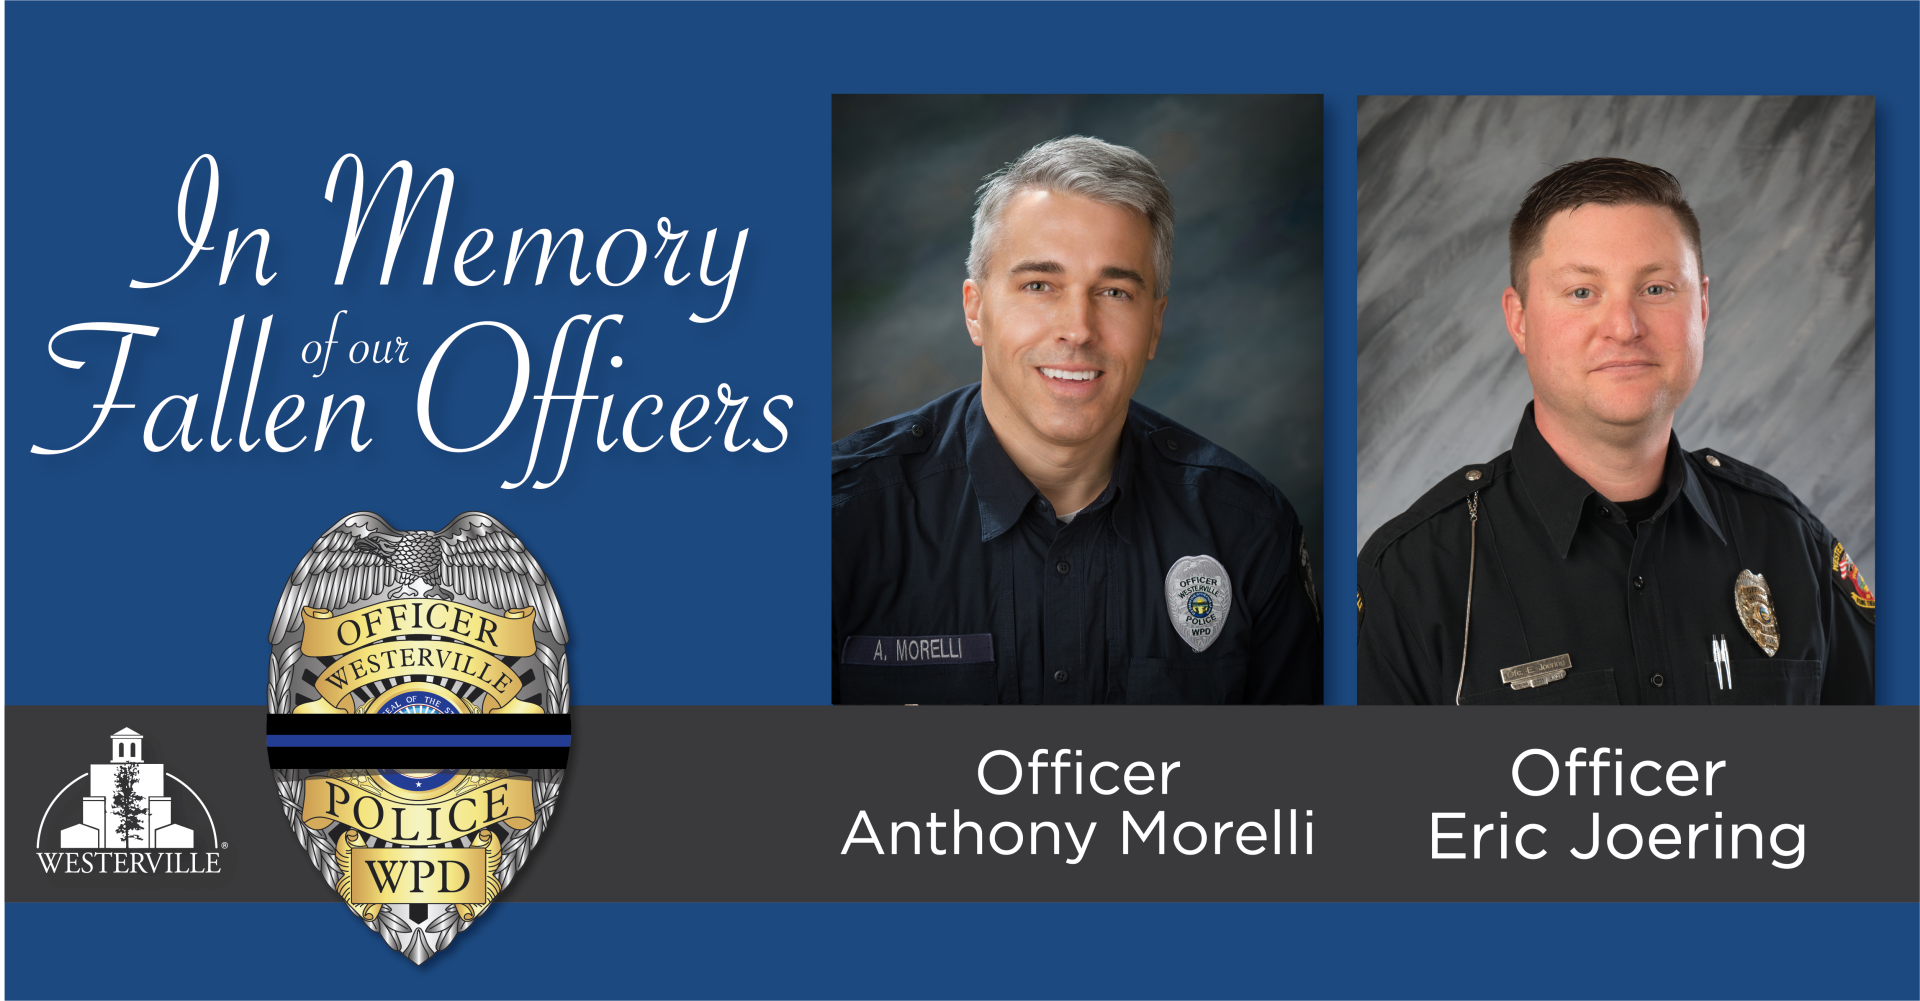 honorofficers1200x627